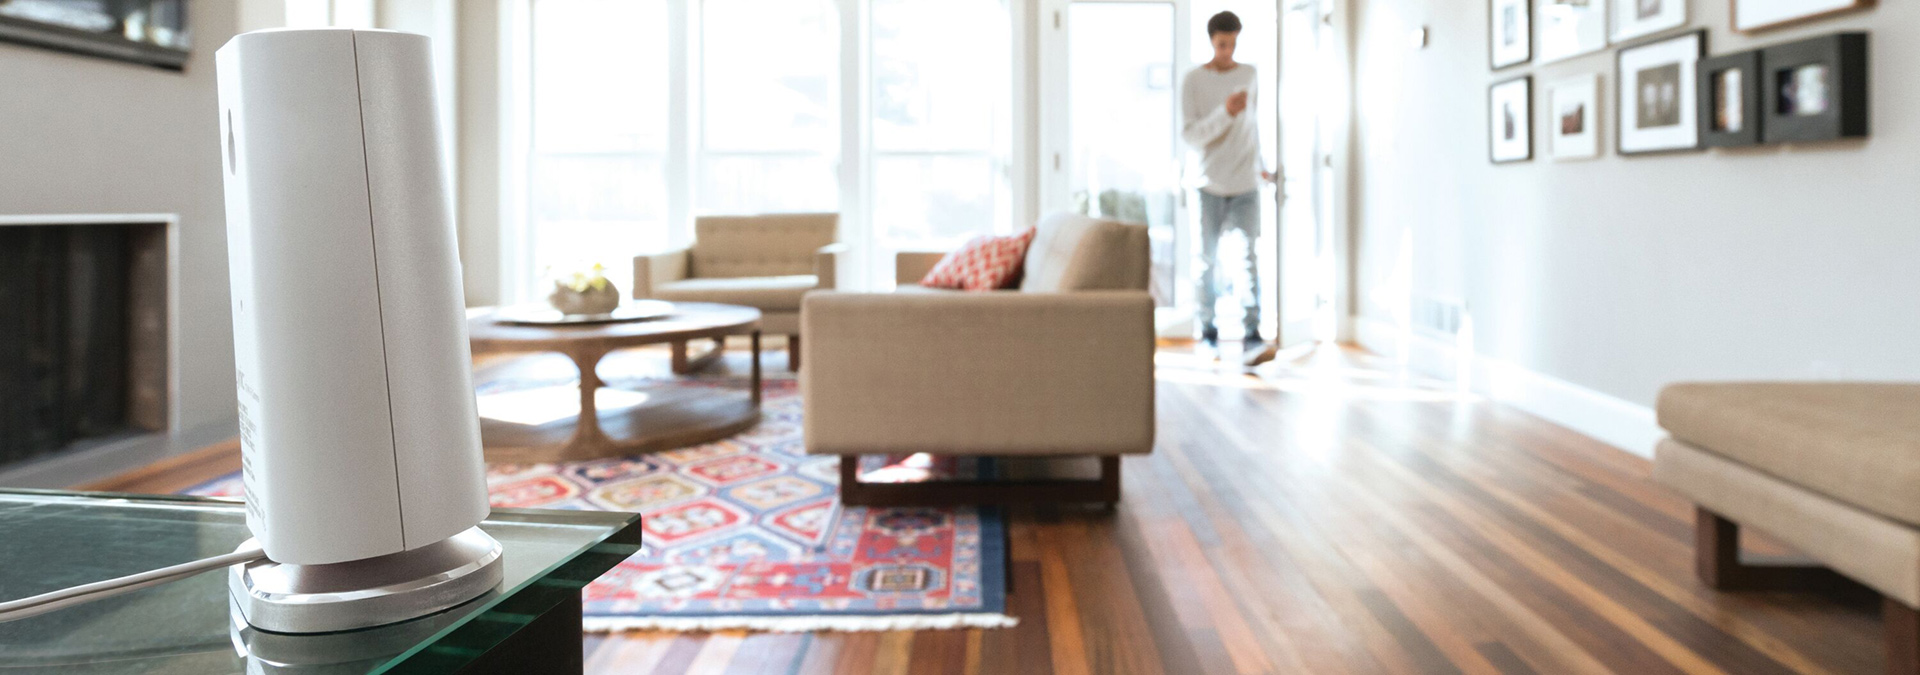 Man with cell phone walking through living room